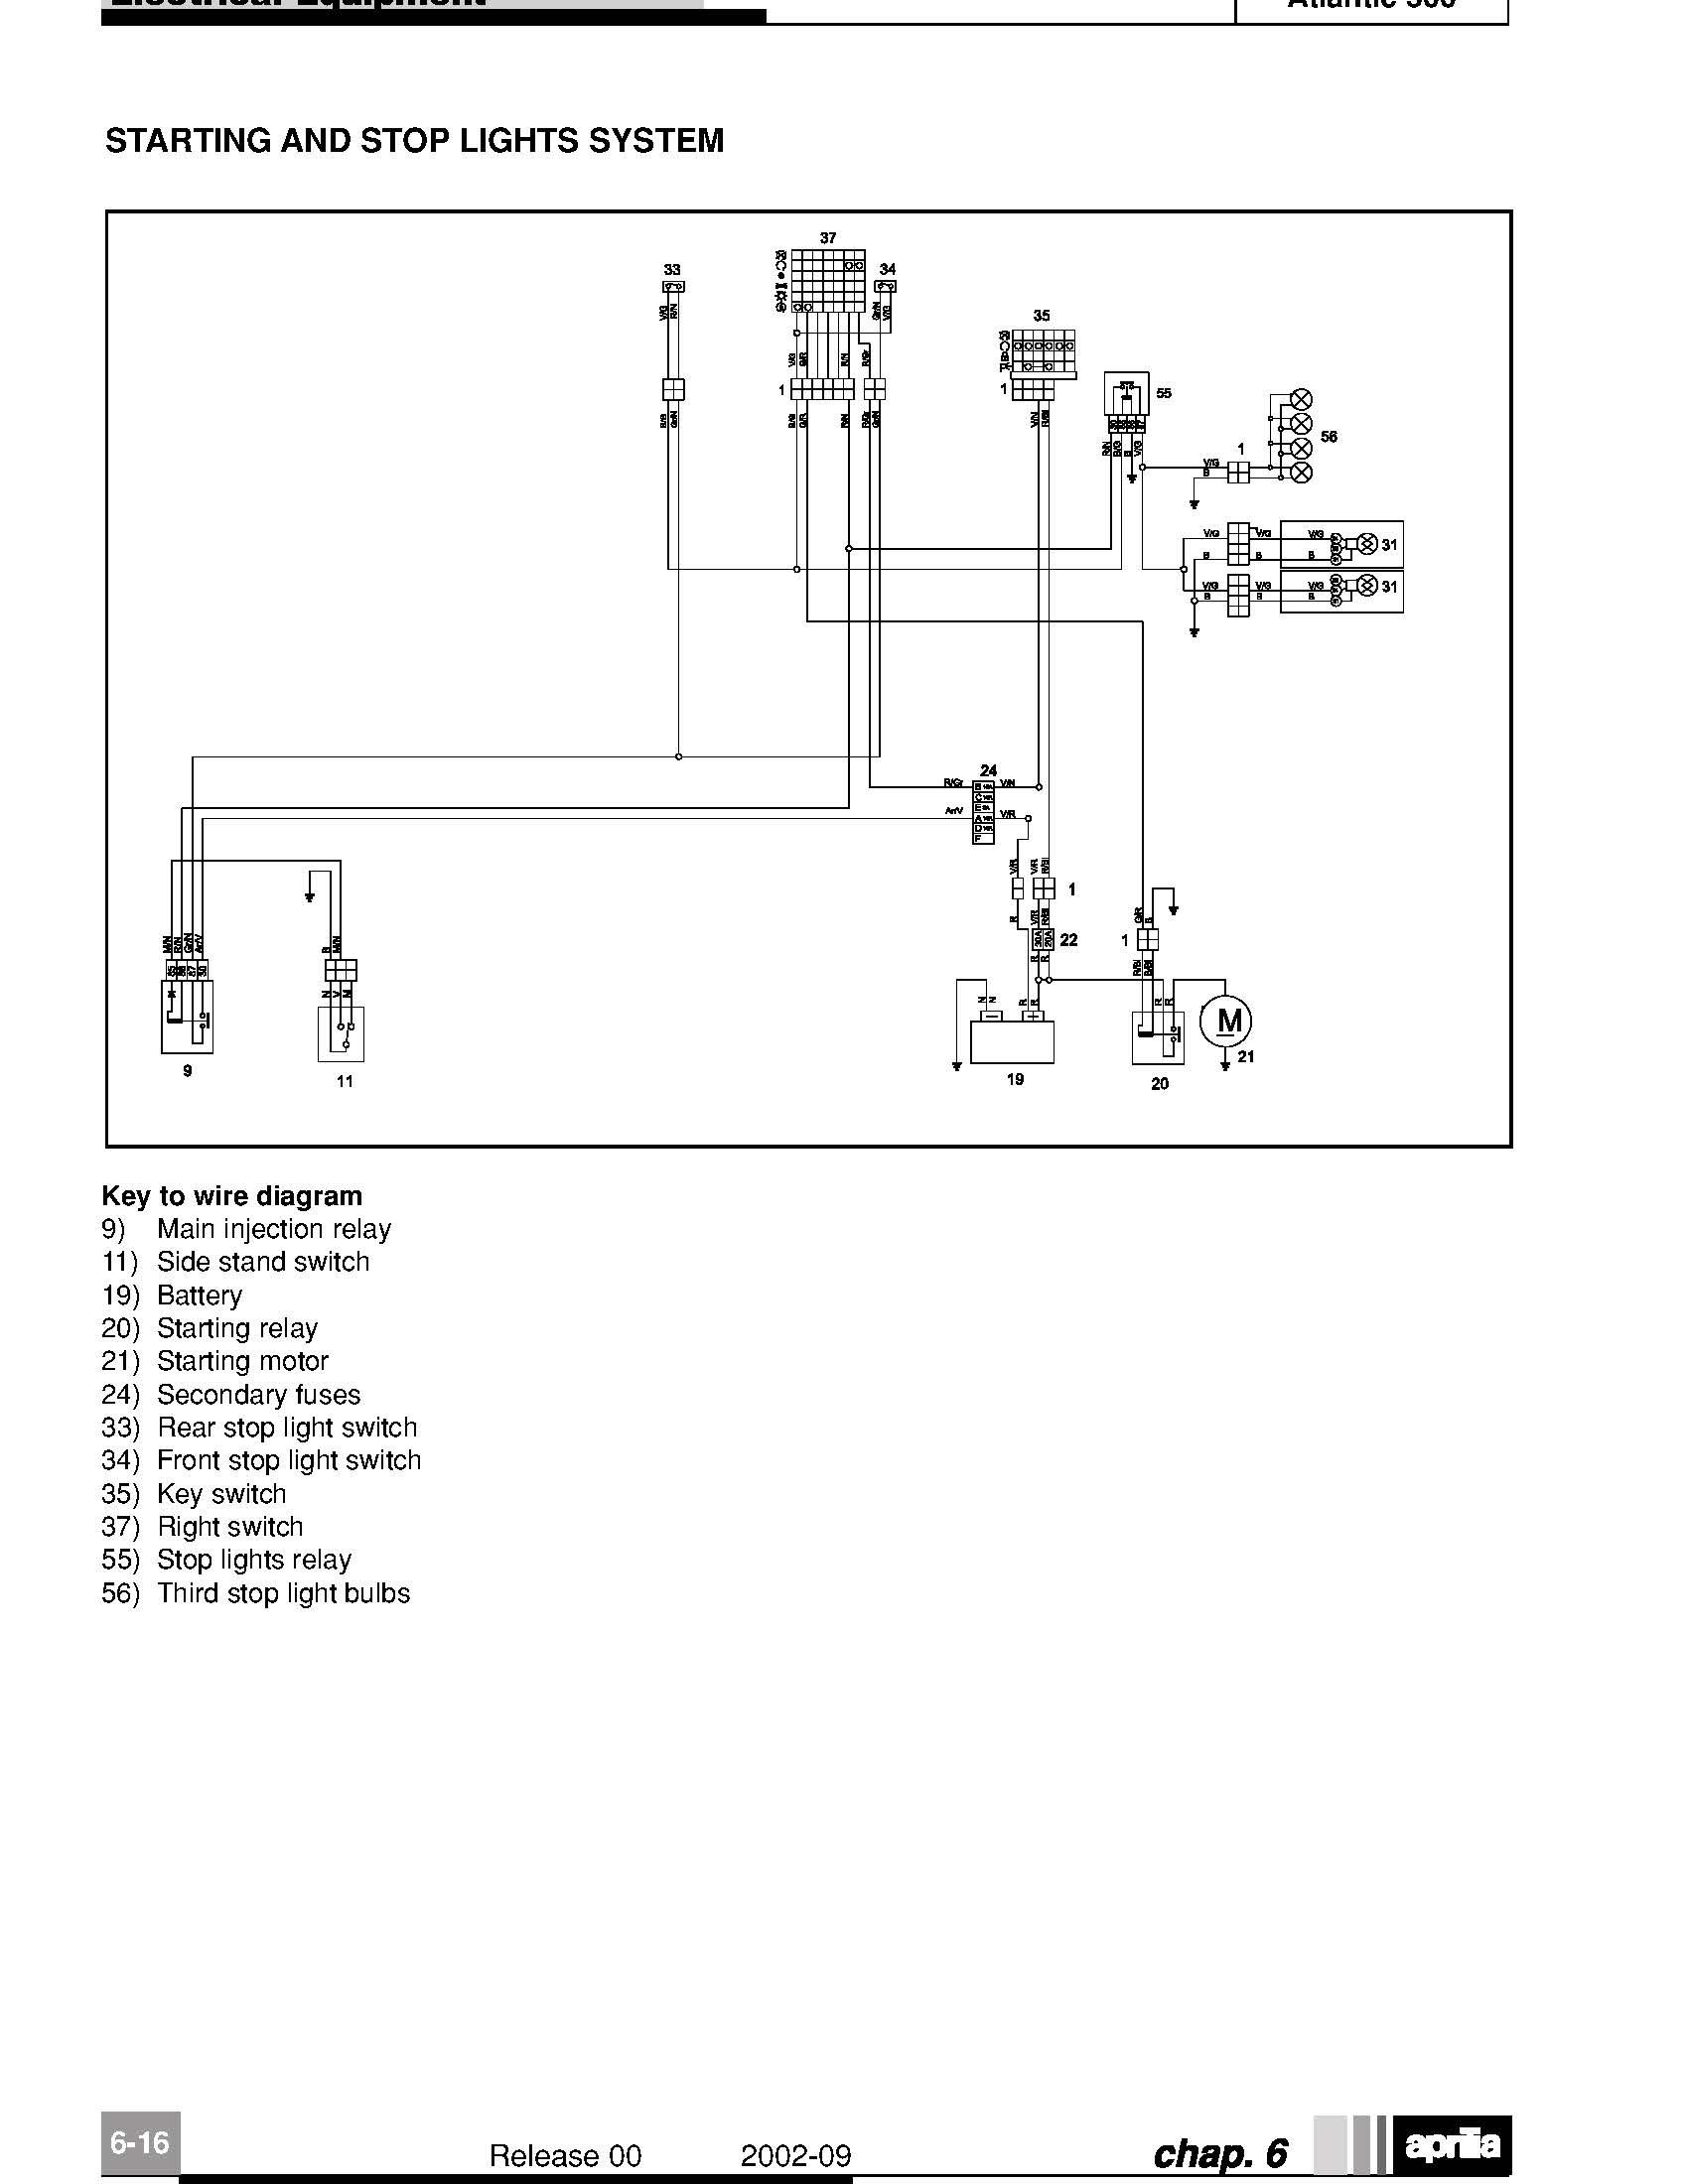 hight resolution of  rewiring the relevant wires to a non security alarm wiring setup for starter button kill switch injection relay etc here s the diagram from my 03